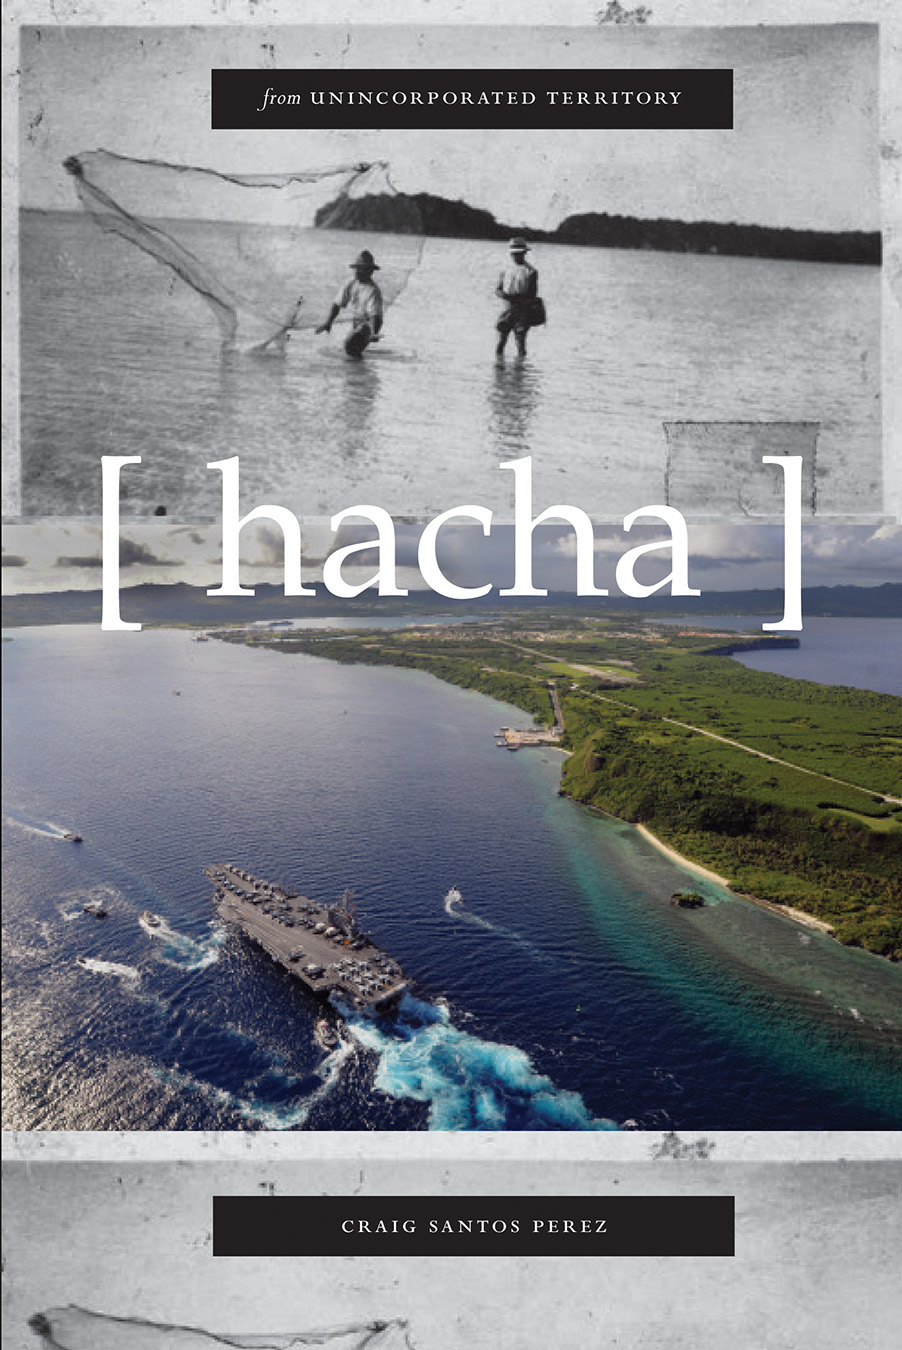 from unincorporated territory [hacha]